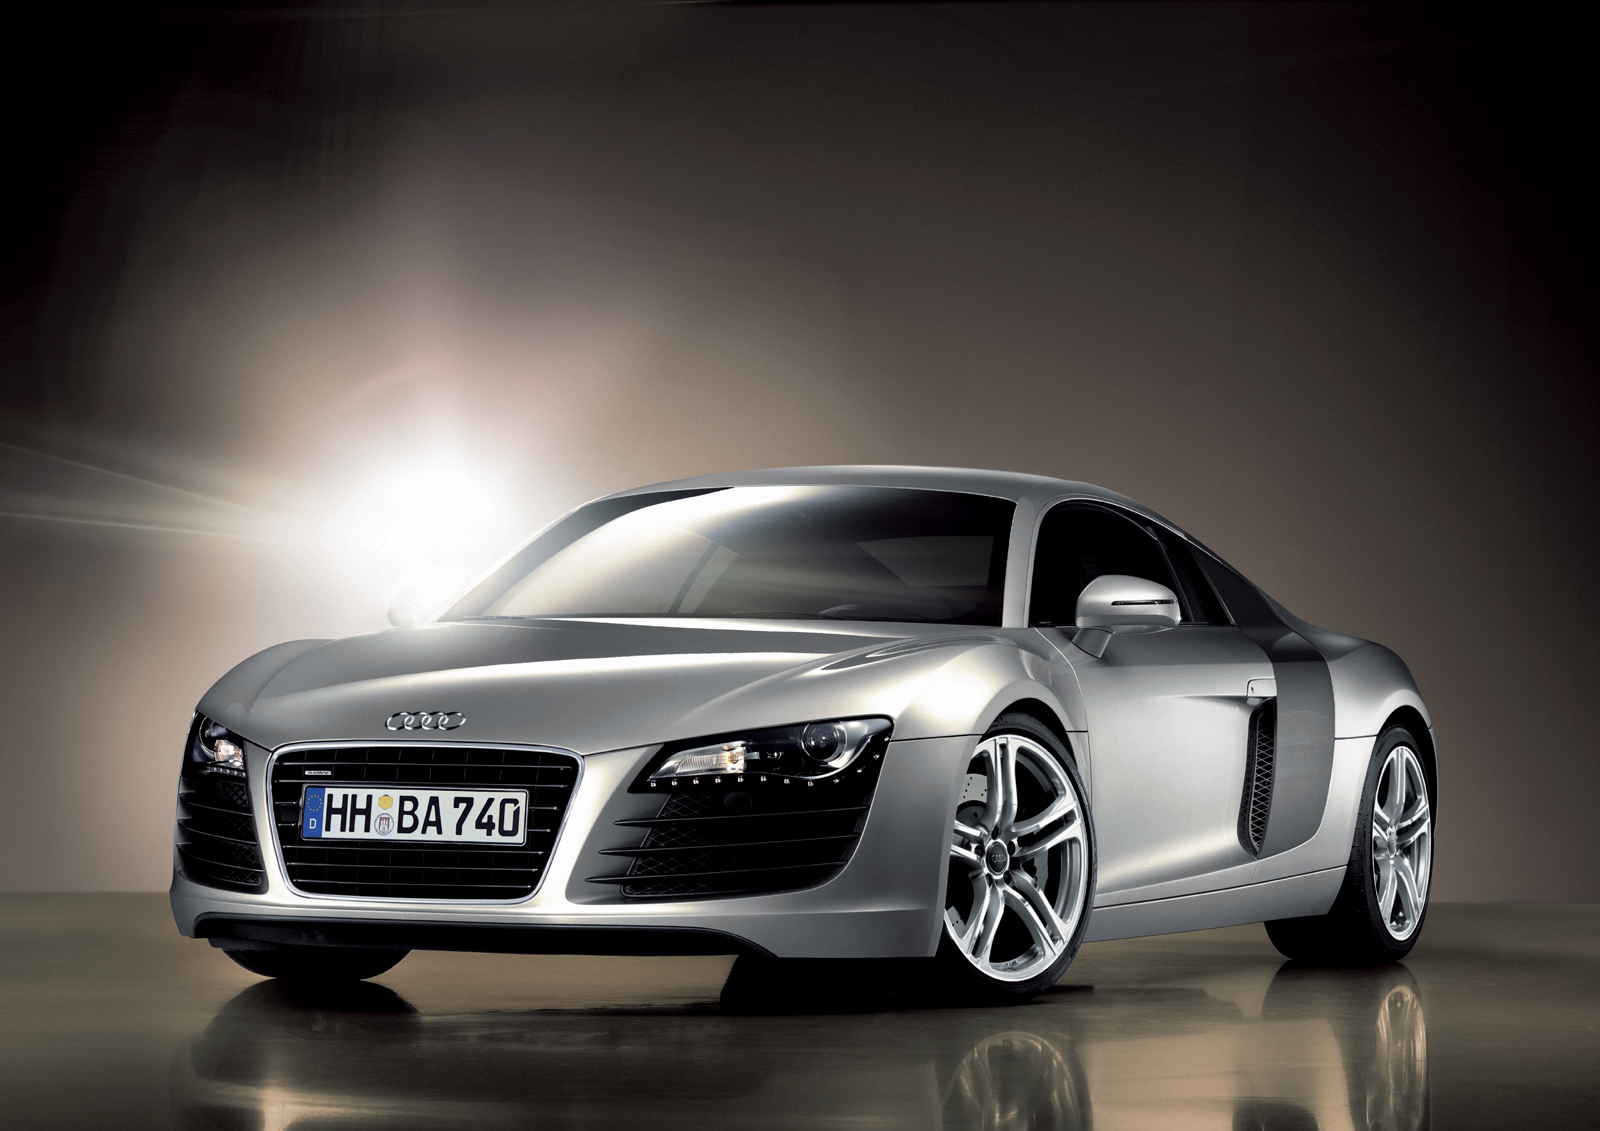 Fast Auto Audi Cars Pictures - Audi pronunciation